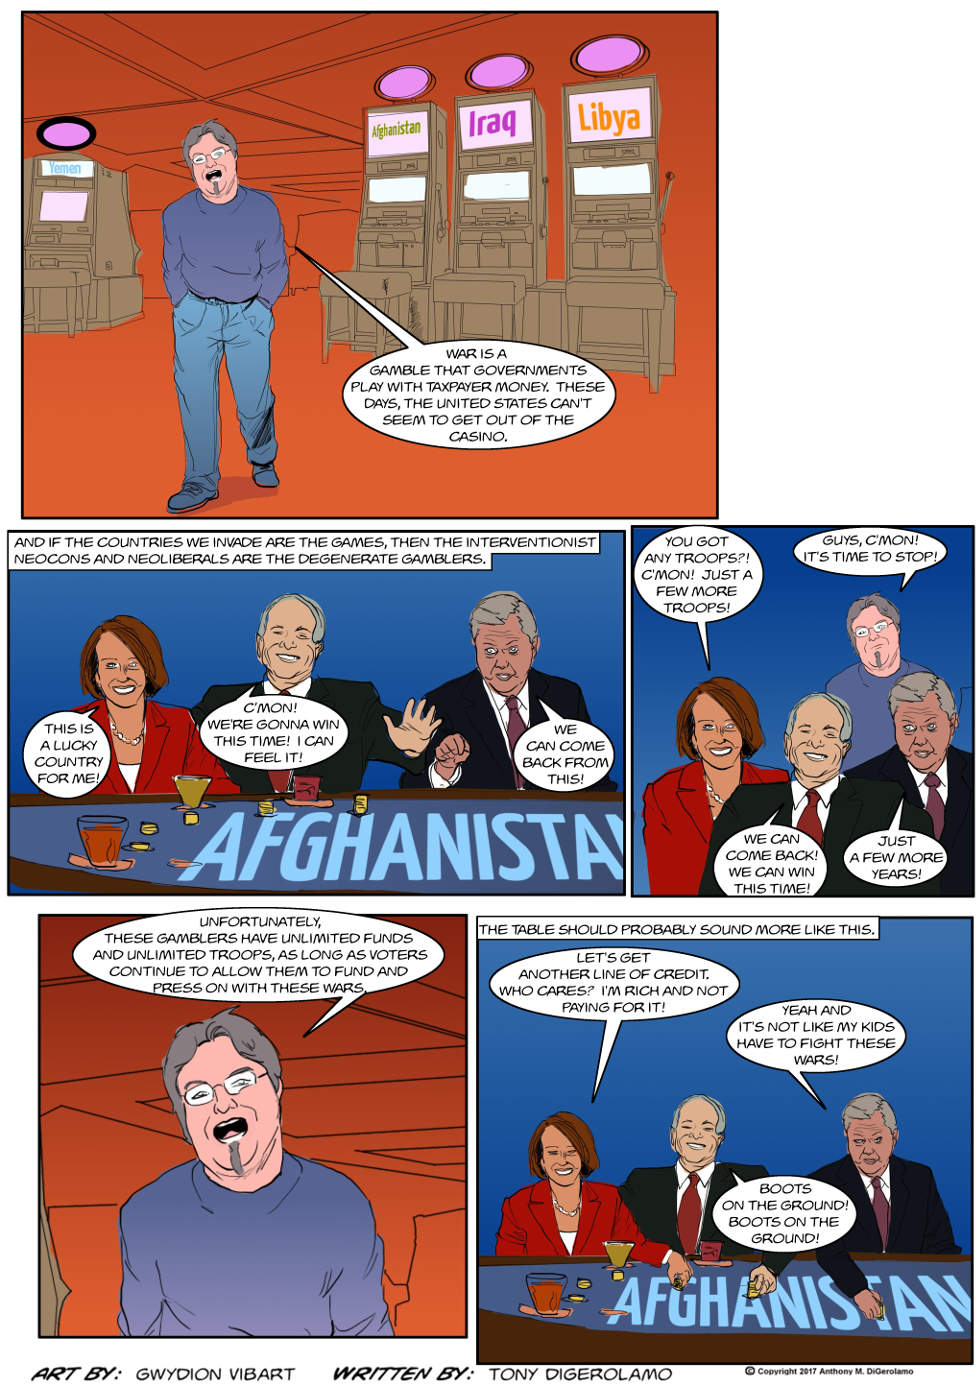 The Antiwar Comic:  Degenerate Interventionists